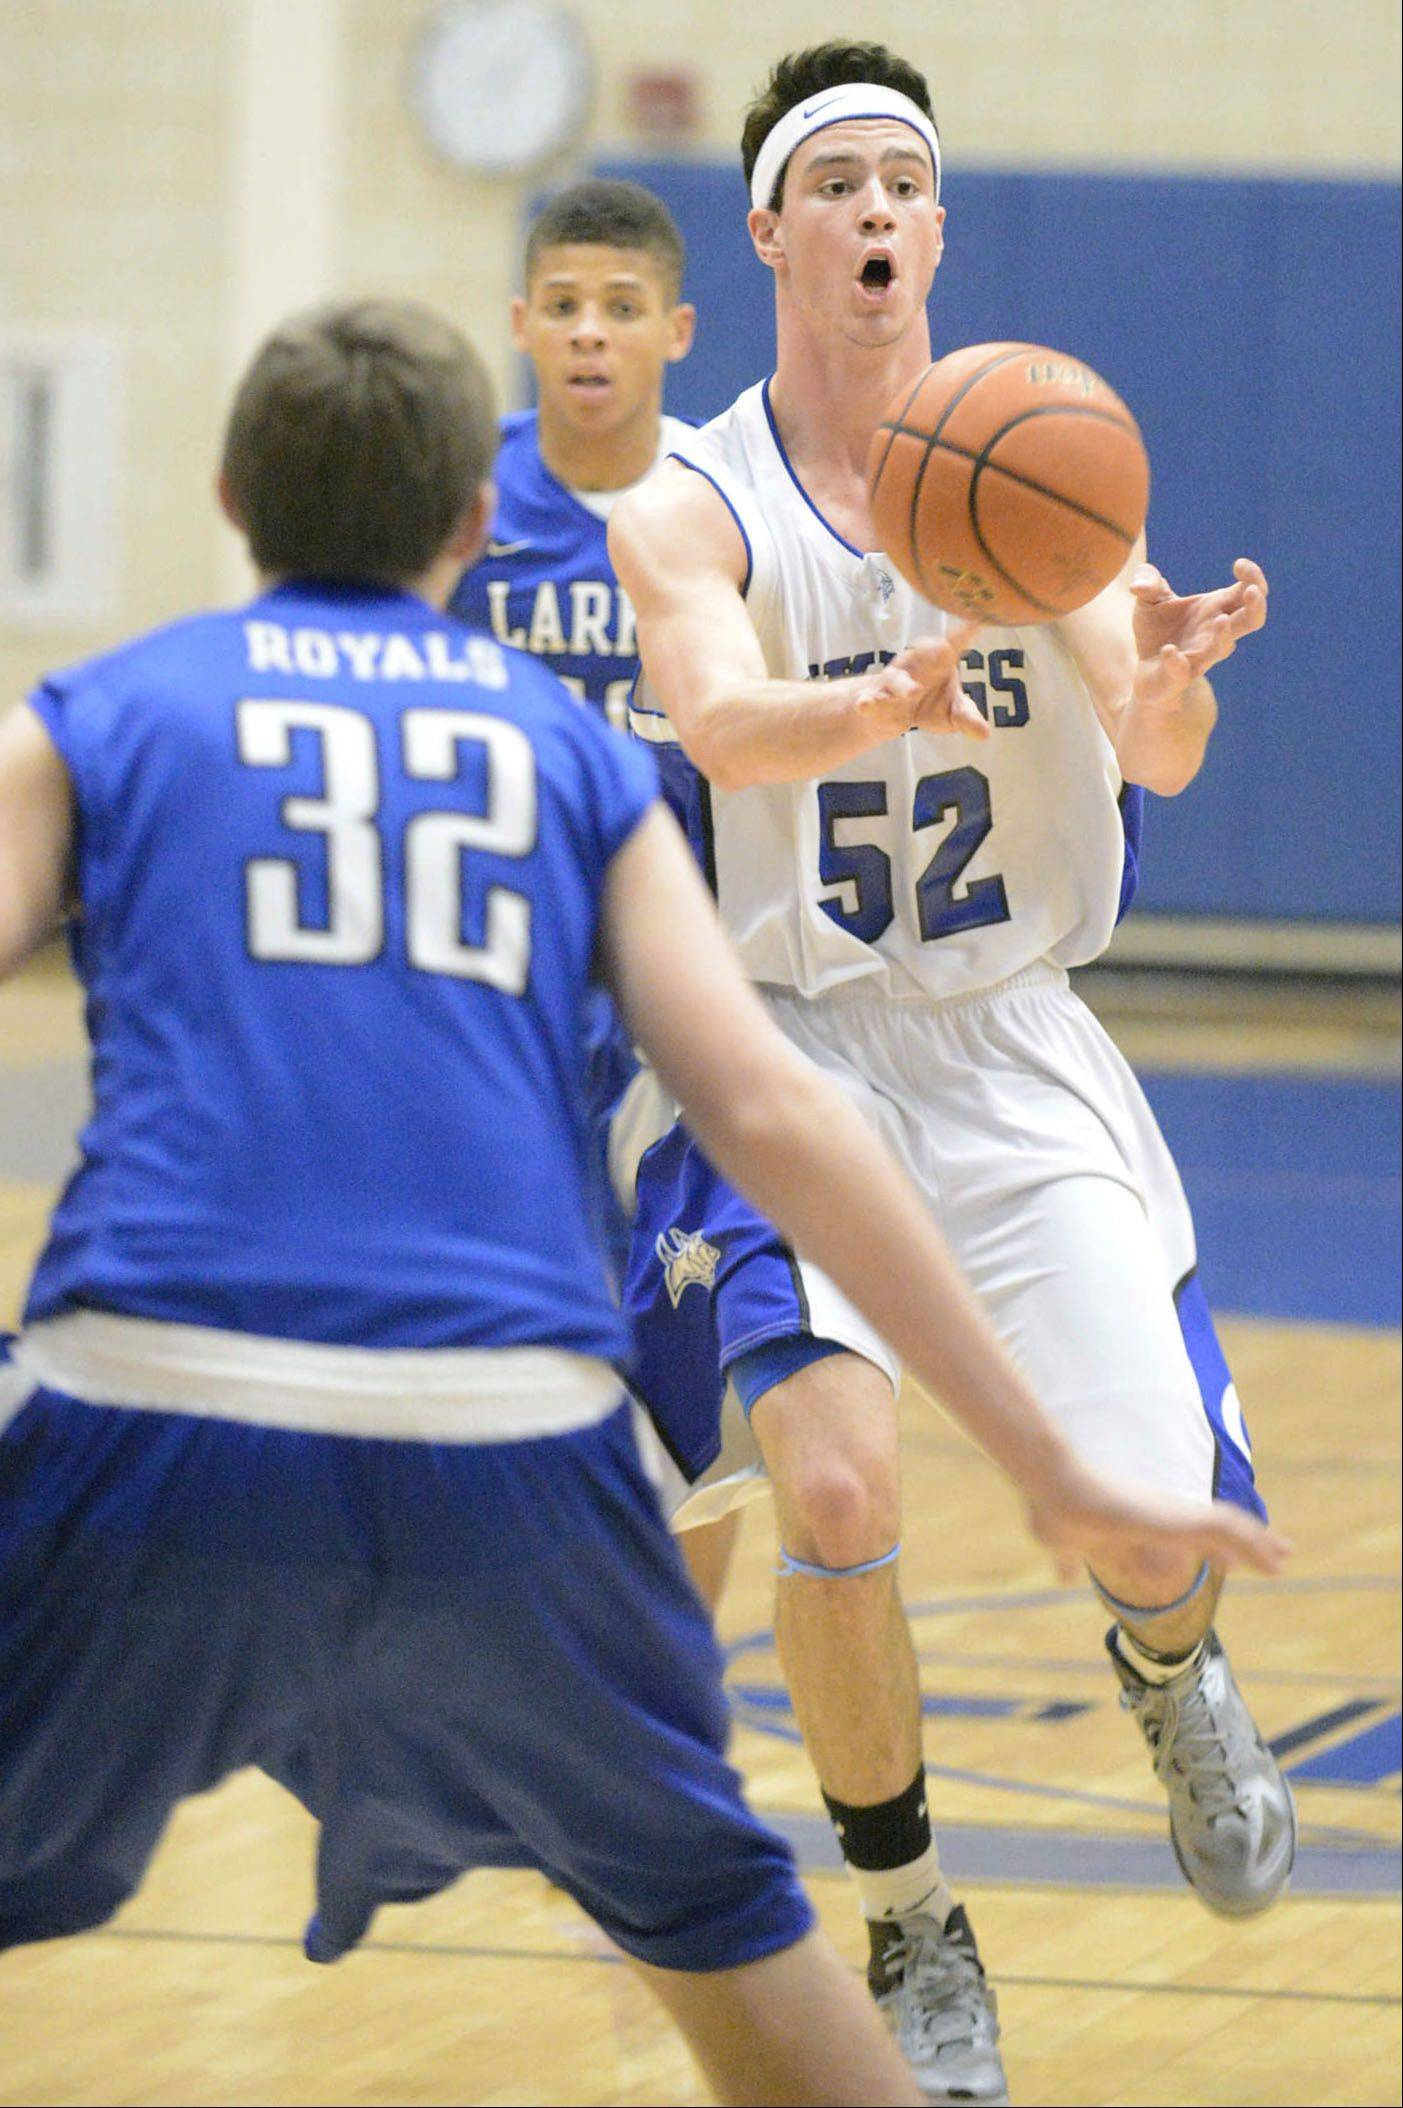 Images from the Larkin vs. Geneva boys basketball game Wednesday, December 20, 2013.